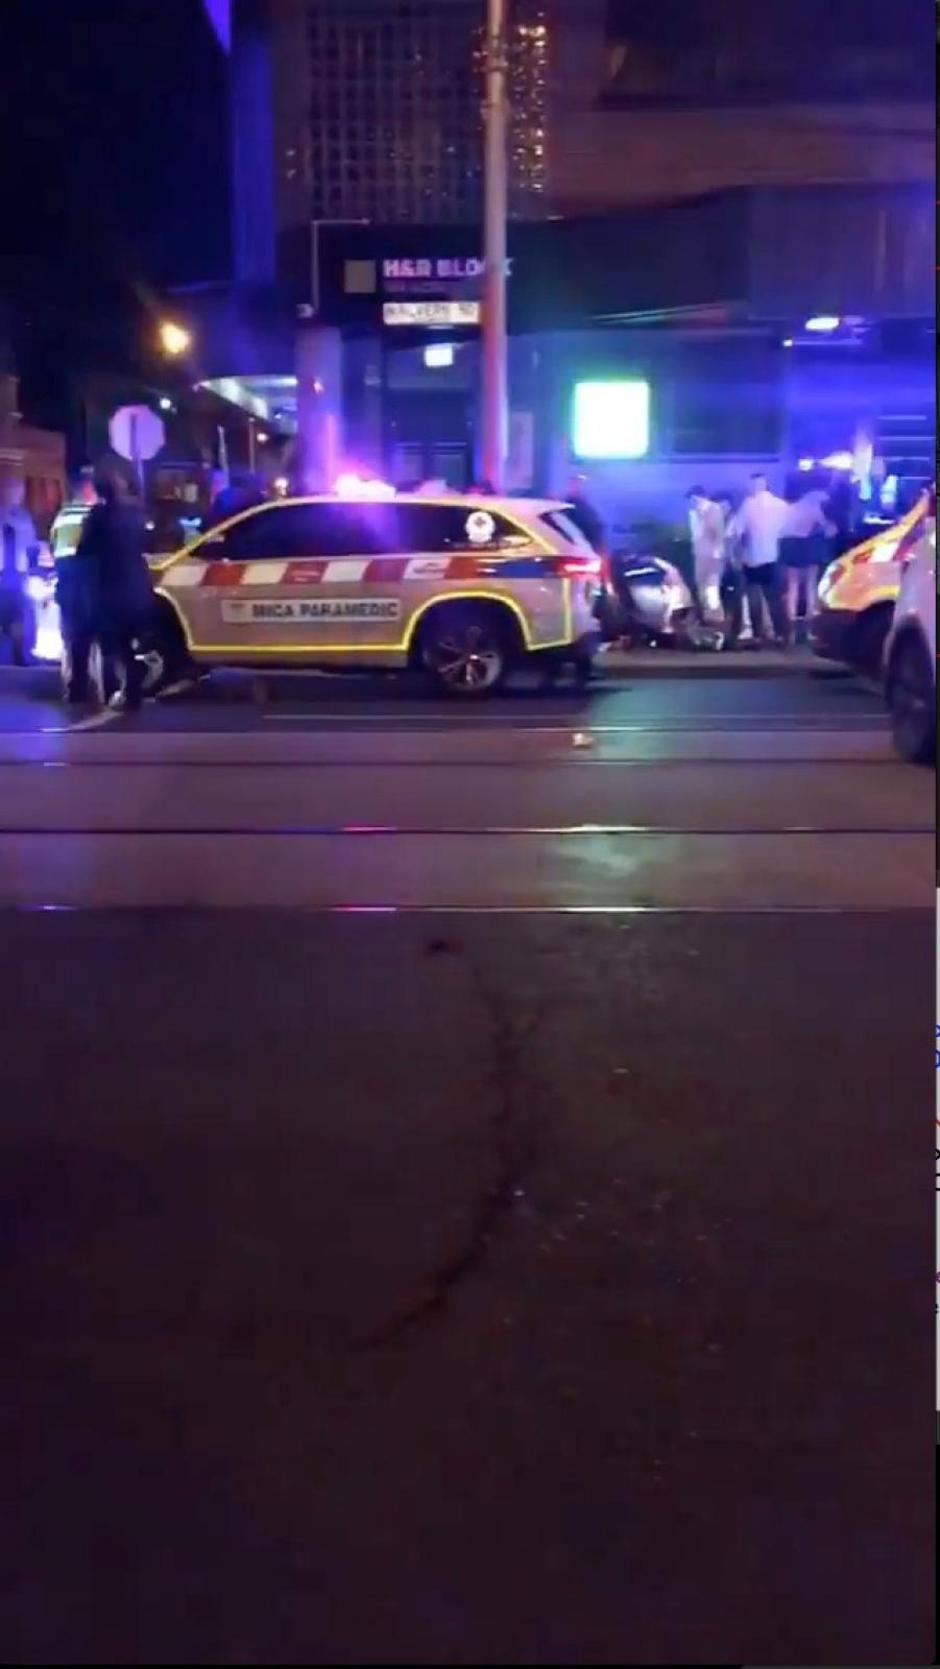 Police and rescue services are seen following a shooting incident outside a nightclub, in Prahran, Melbourne, Australia in this still frame taken from social media video | Autor: SOCIAL MEDIA/REUTERS/PIXSELL/REUTERS/PIXSELL